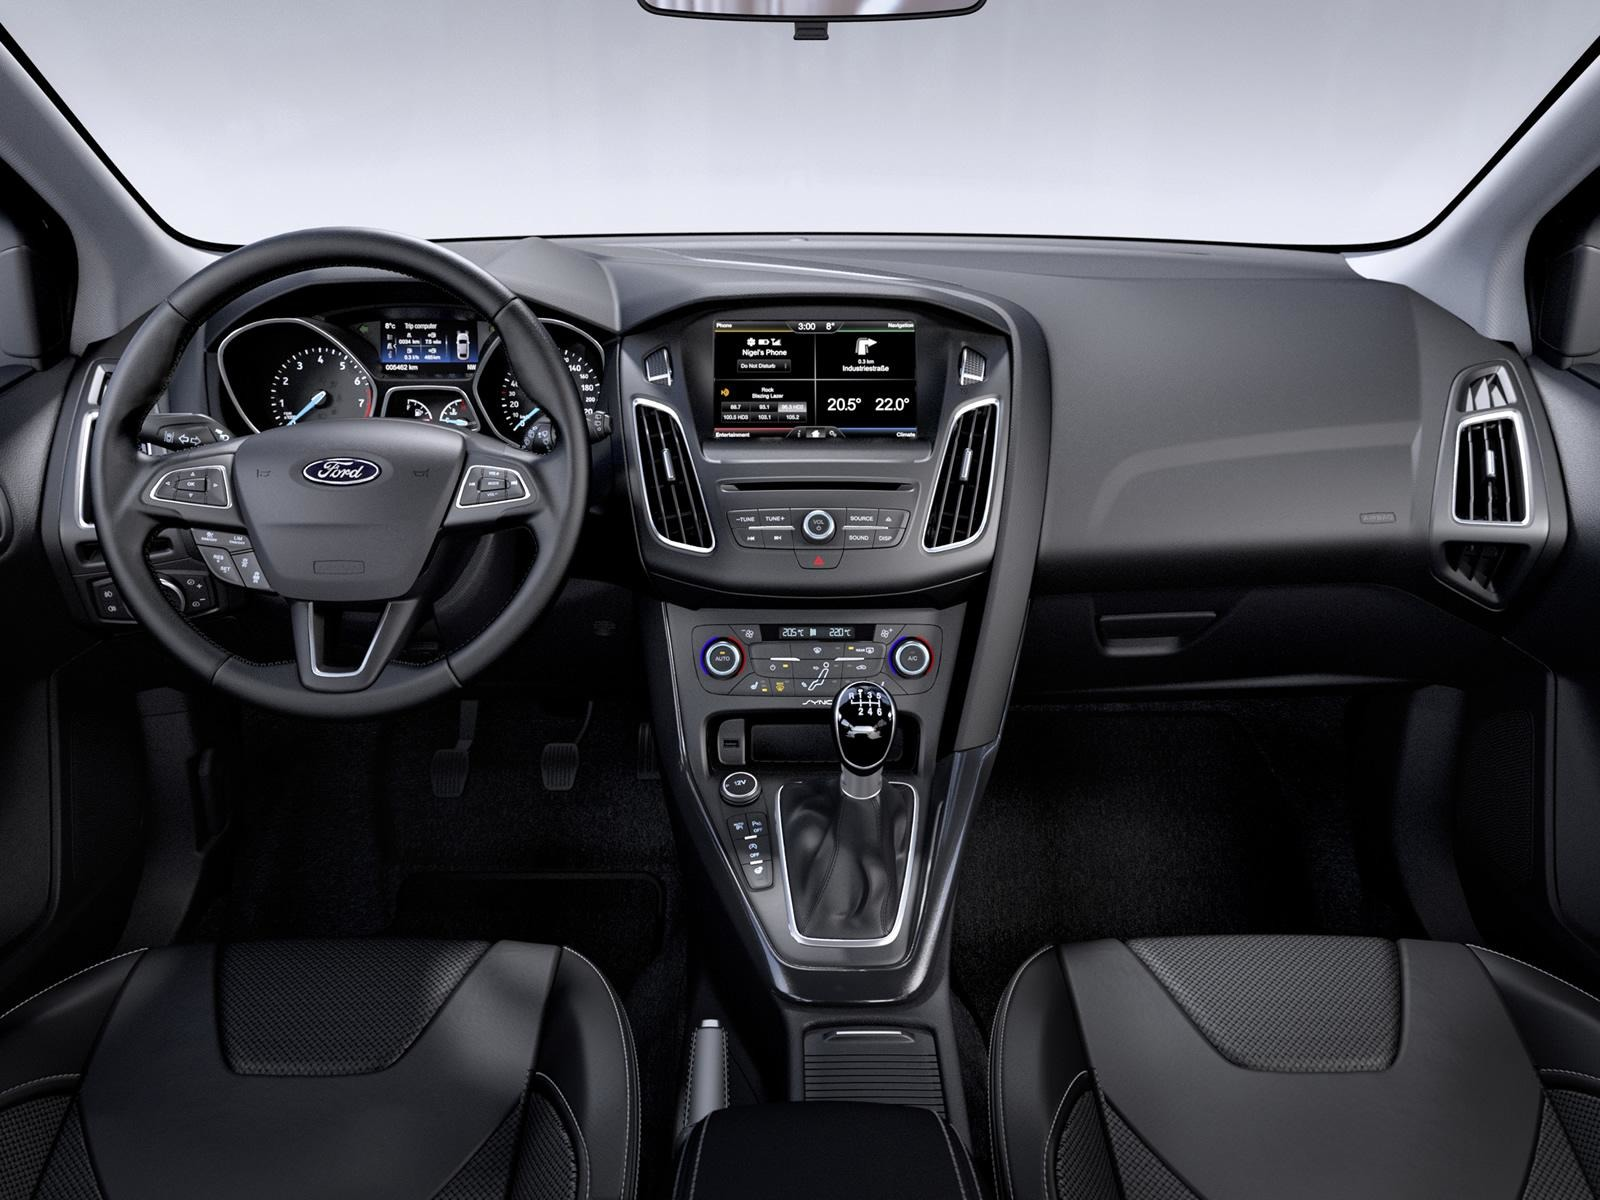 2014 ford fusion manual transmission review